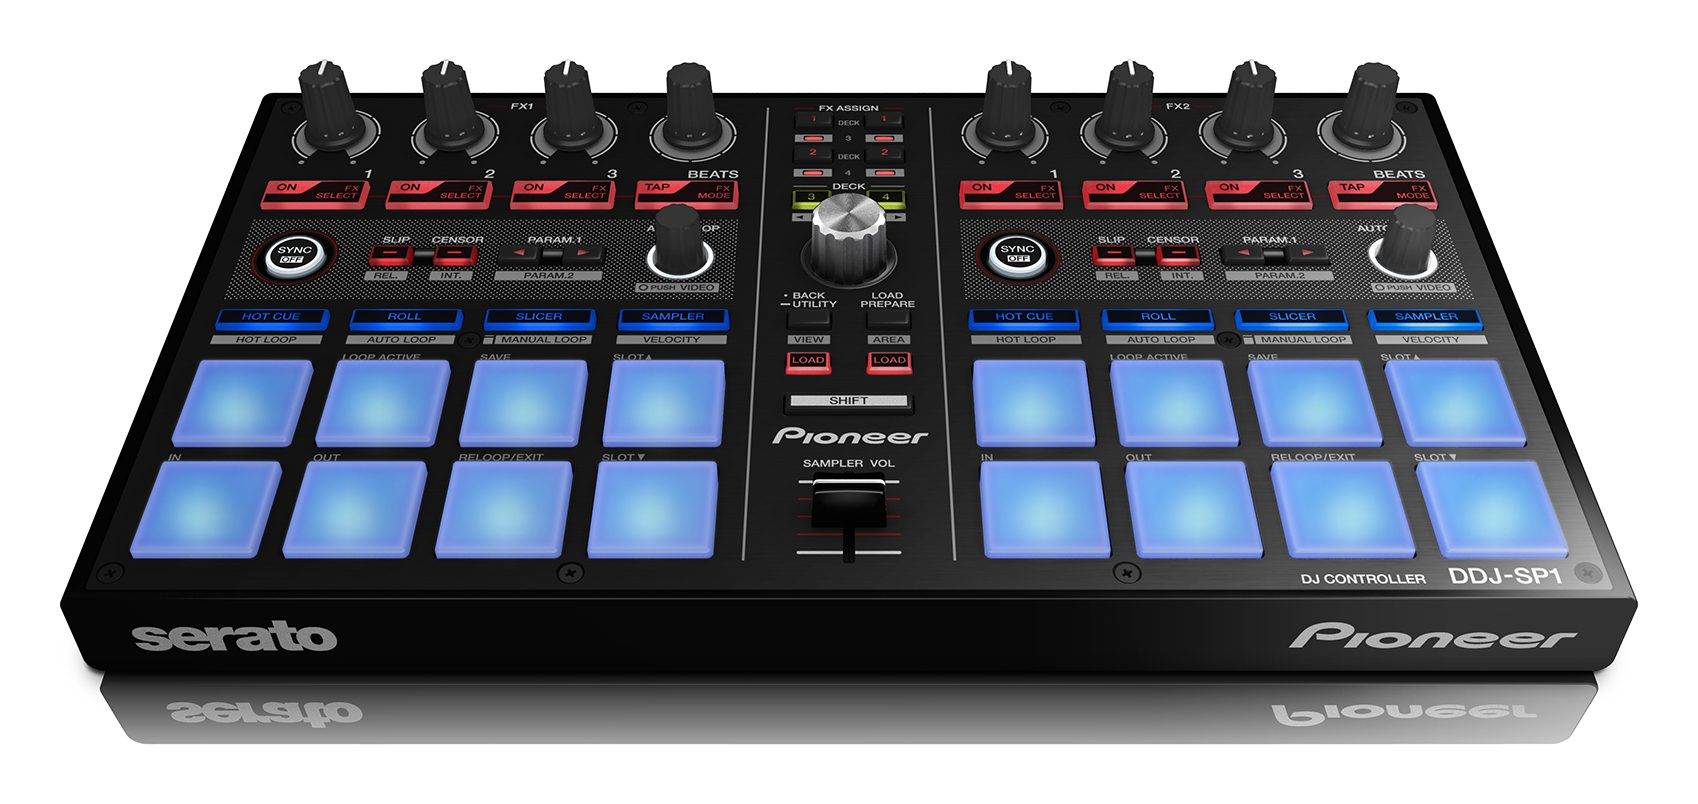 Neu: Pioneer DDJ-SP1 - Serato DJ Add-On Controller für Effekte, Loops und Sampler New: Pioneer DDJ-SP1 - Serato DJ Add-On Controller